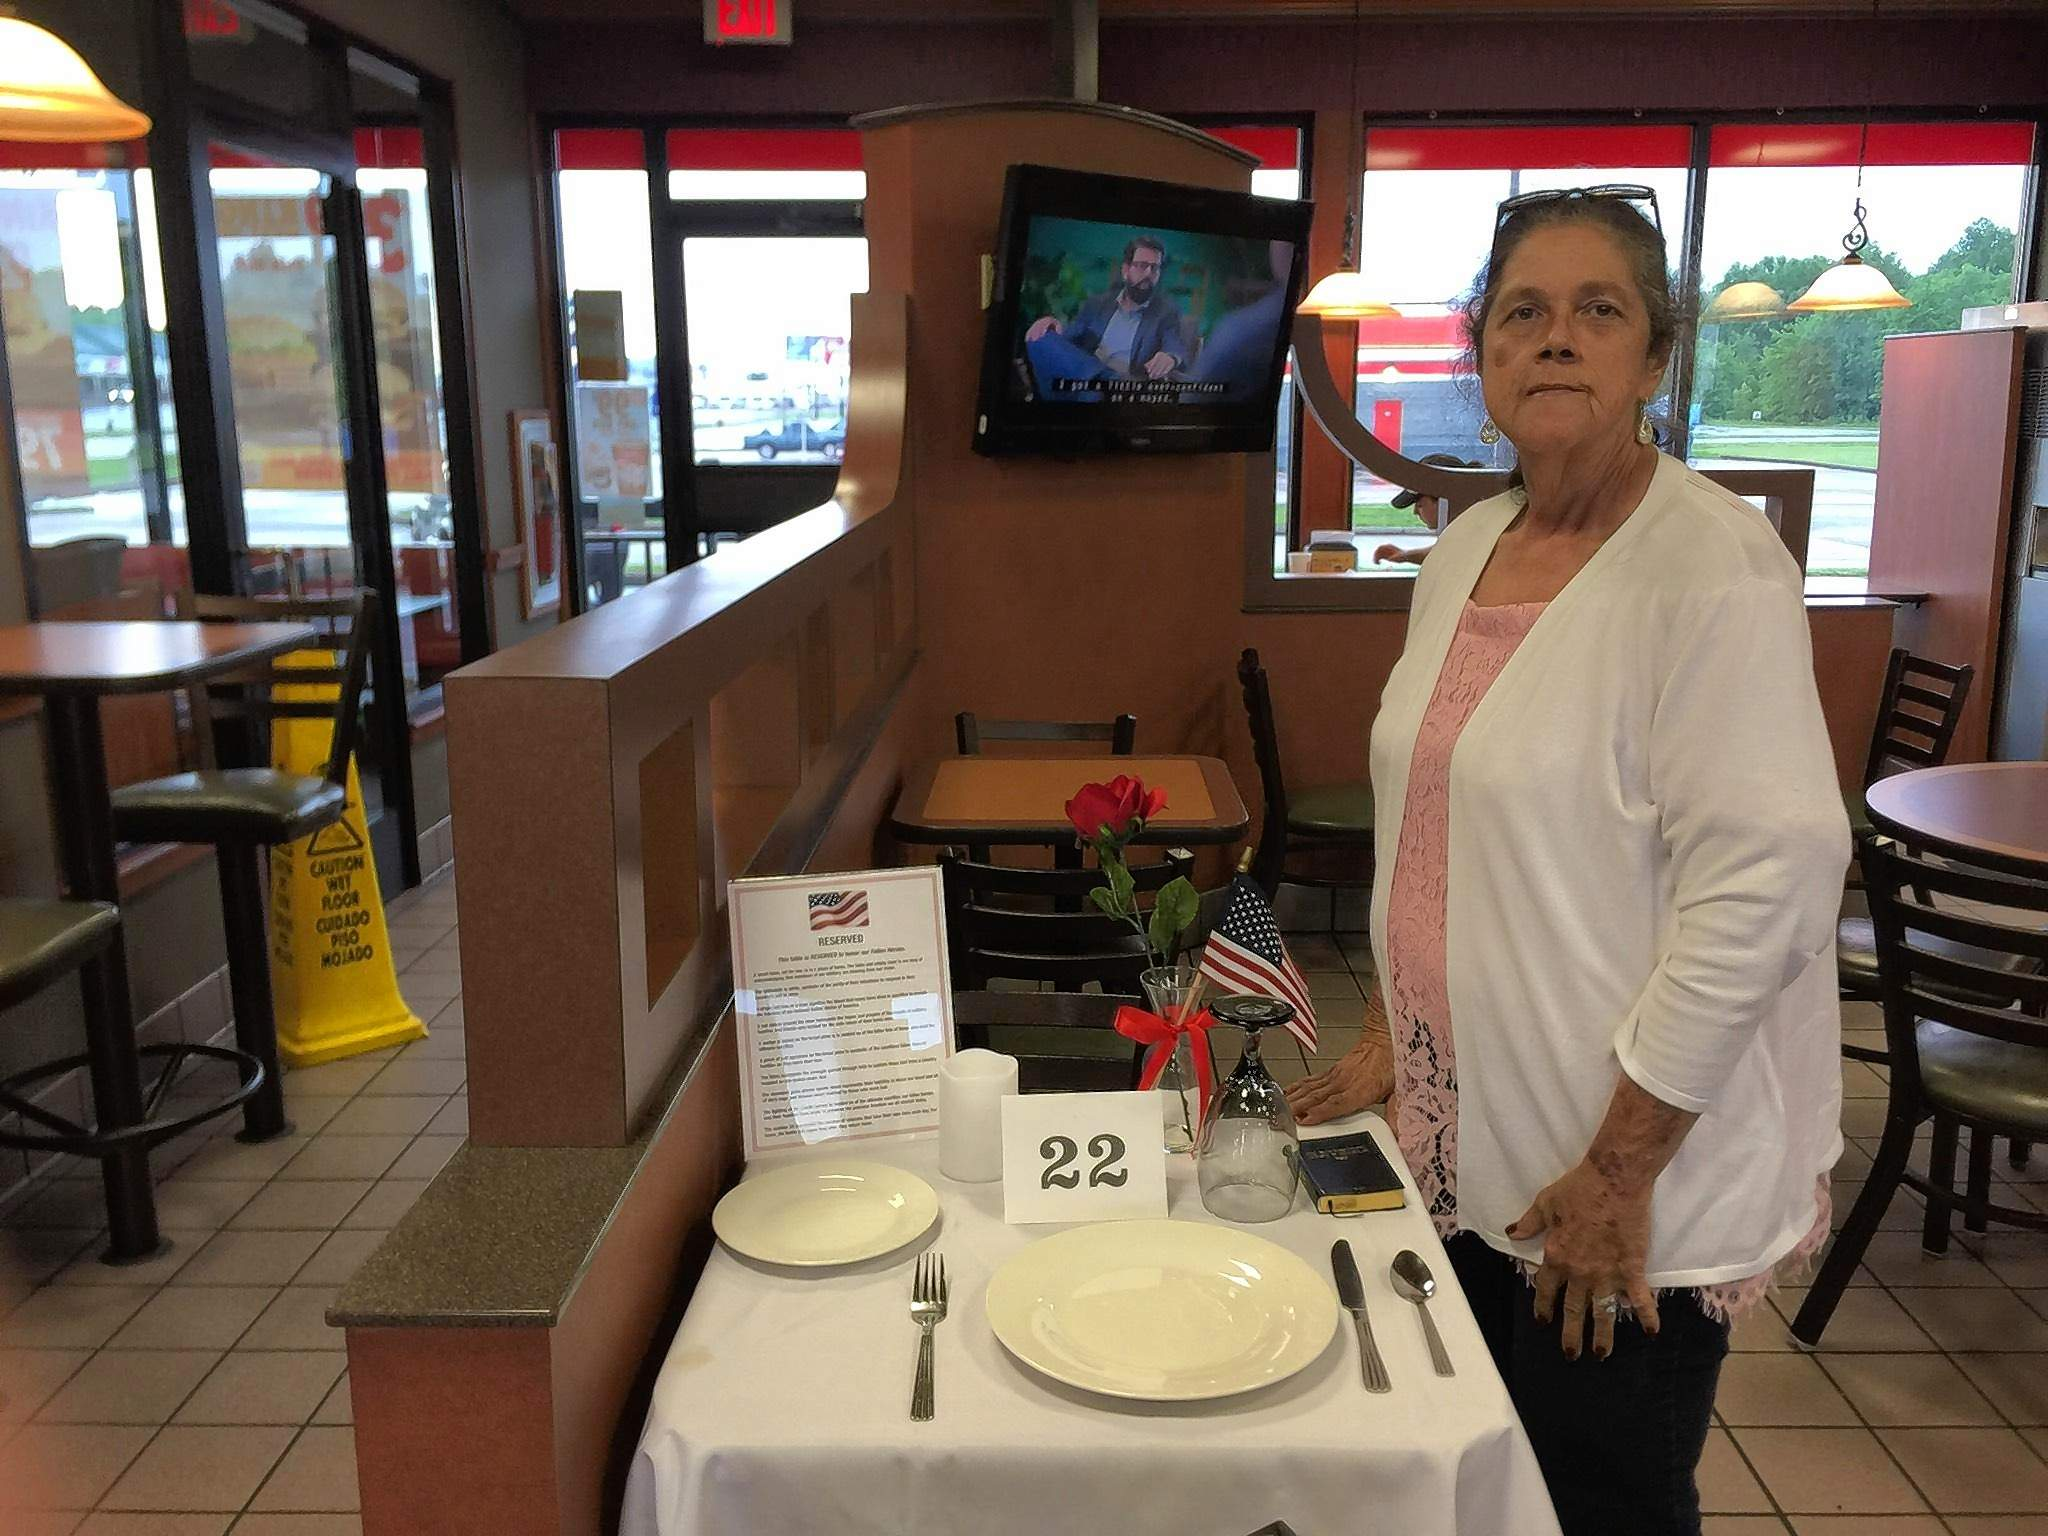 Mary Rivera, a member of the Michael Hillegas DAR, stands with reverence beside the Missing Man Table set up for Memorial Day at Burger King. The table is a place of honor, set up in memory of fallen, missing, or imprisoned military service members.